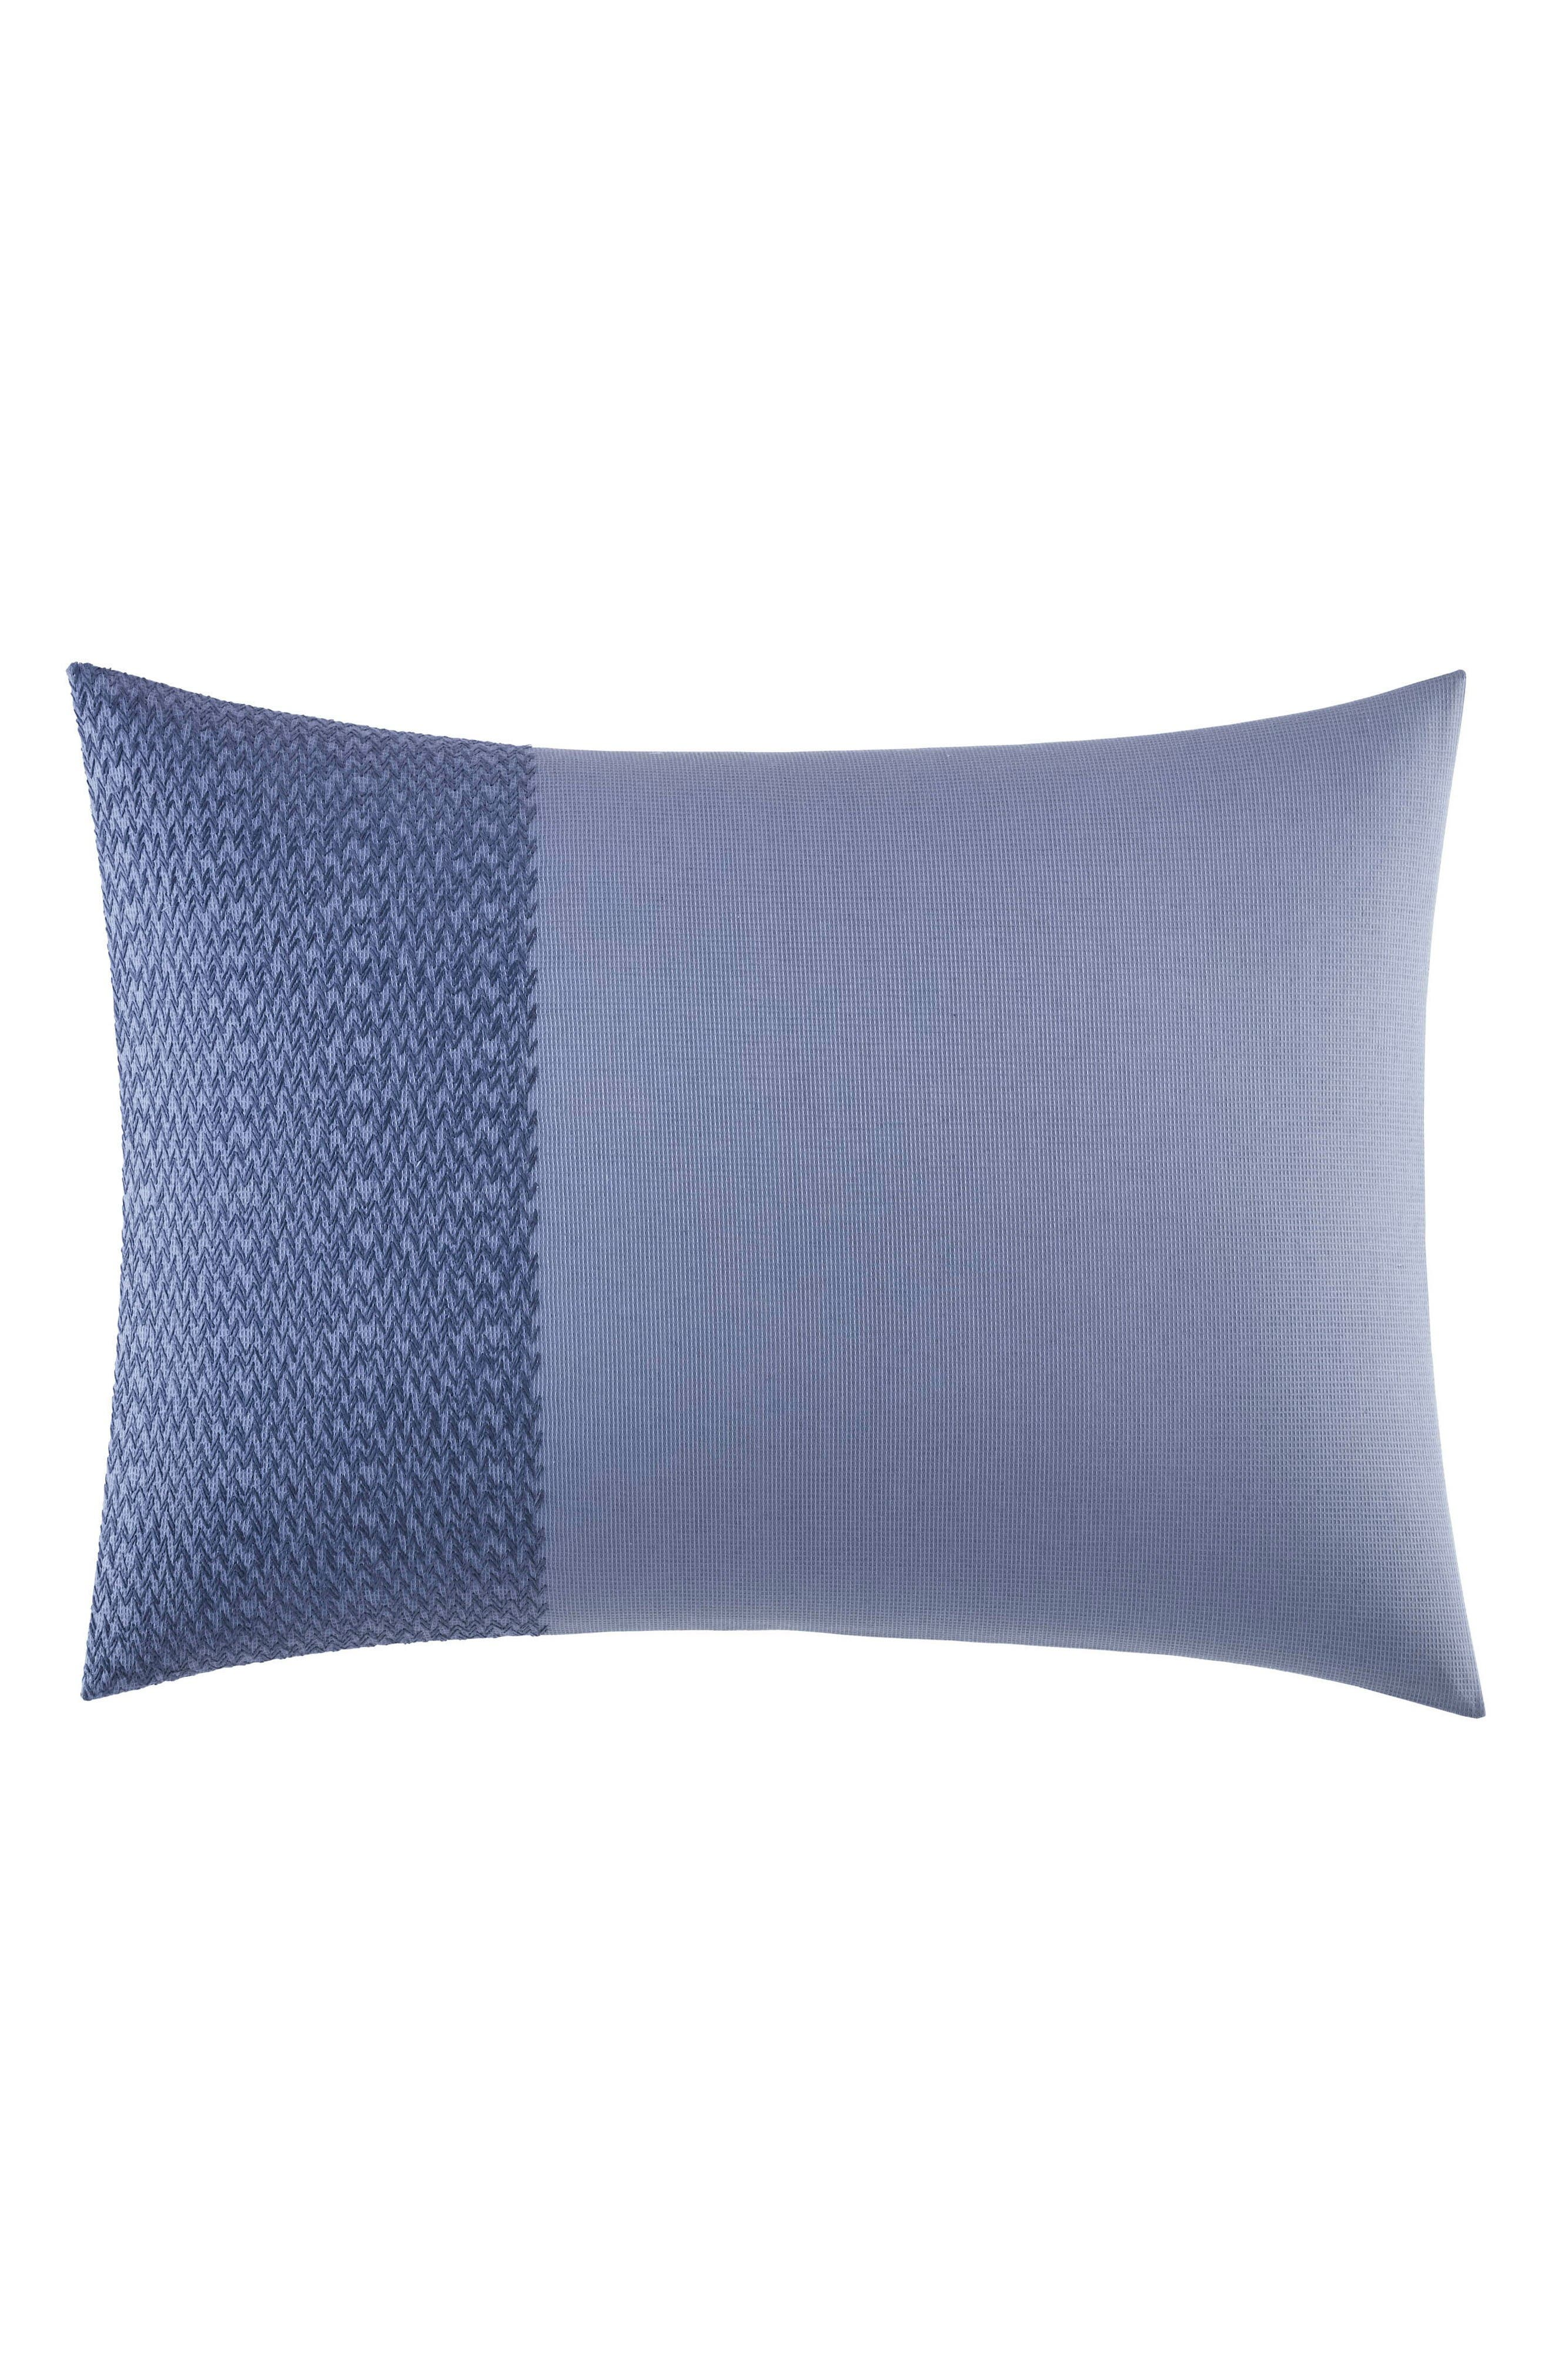 Vera Wang Chevron Breakfast Pillow